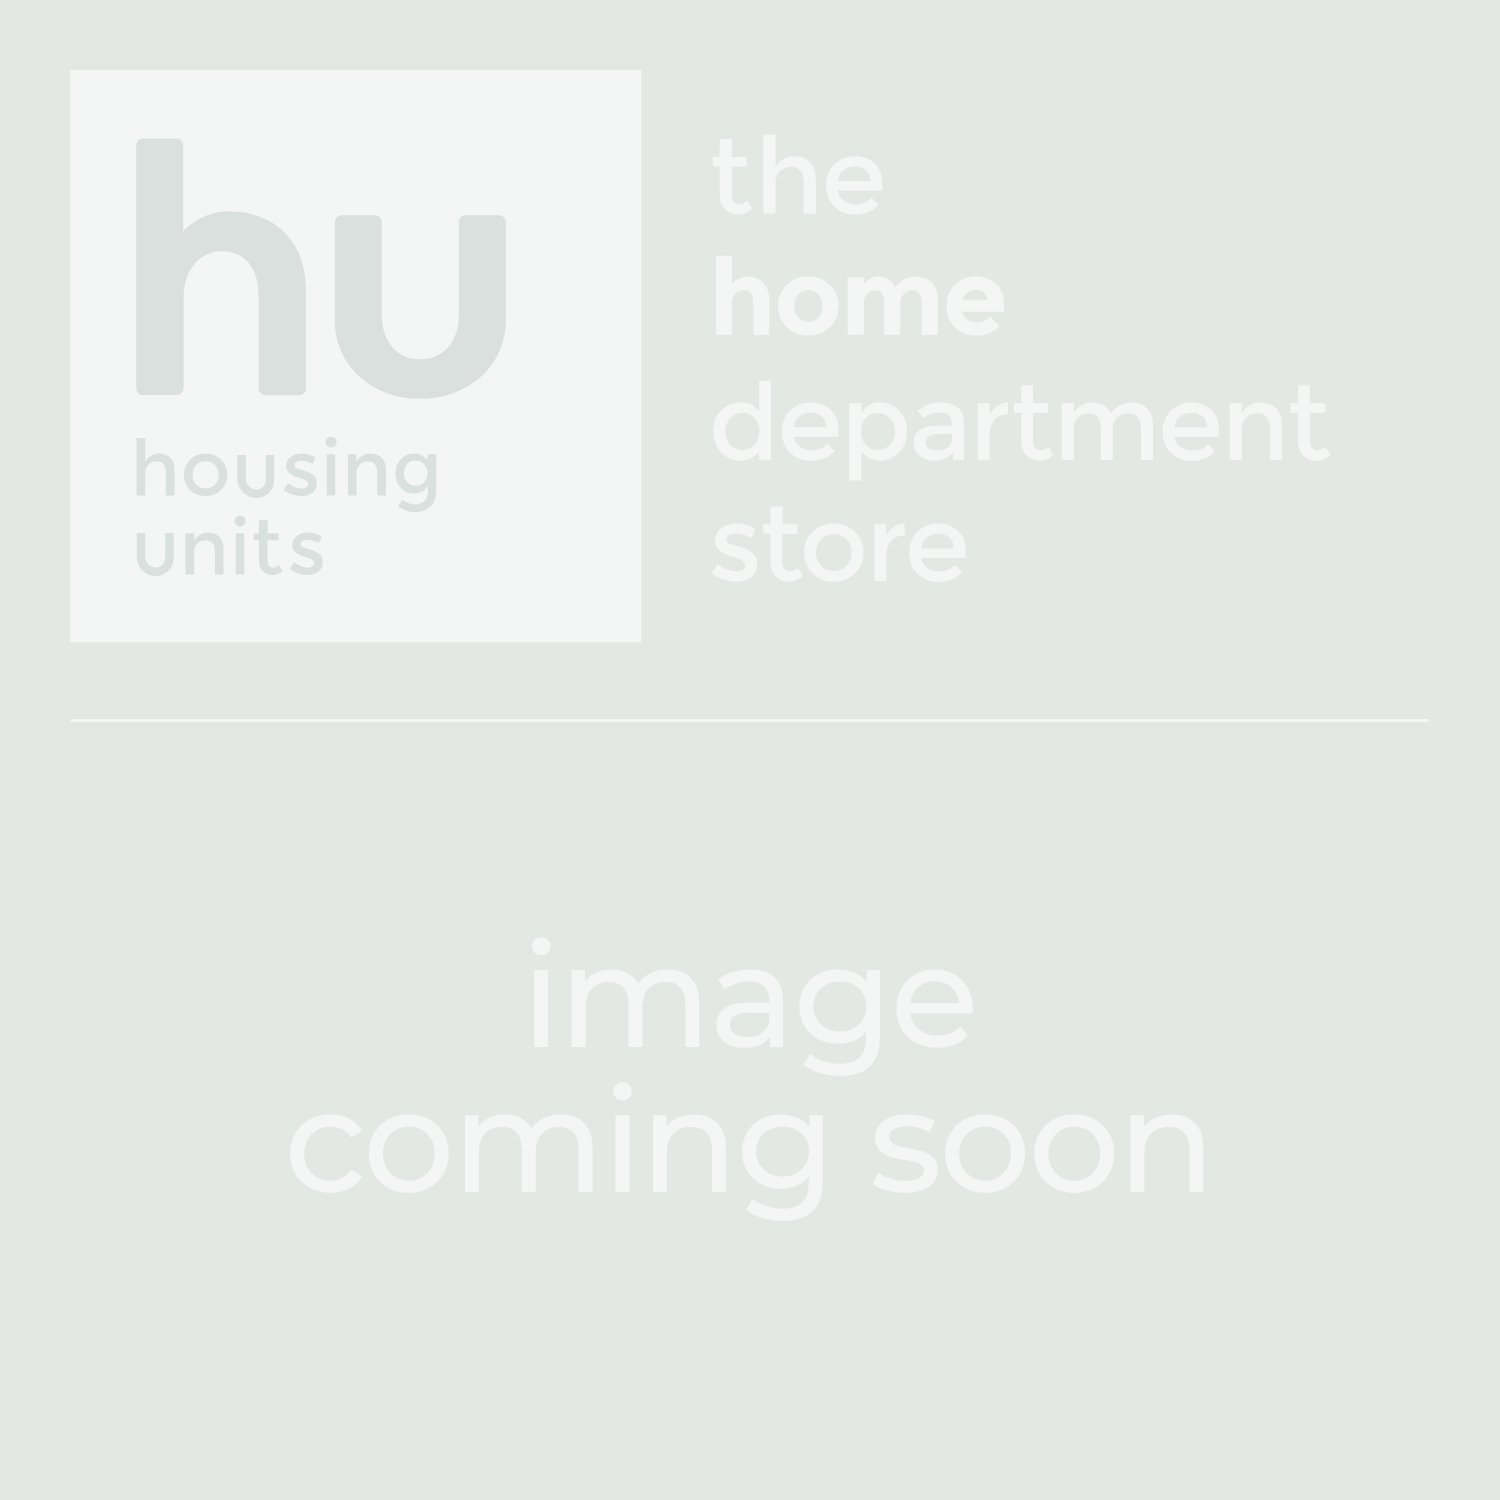 Celine Crystal & Gold 6 Light Pendant | Housing Units